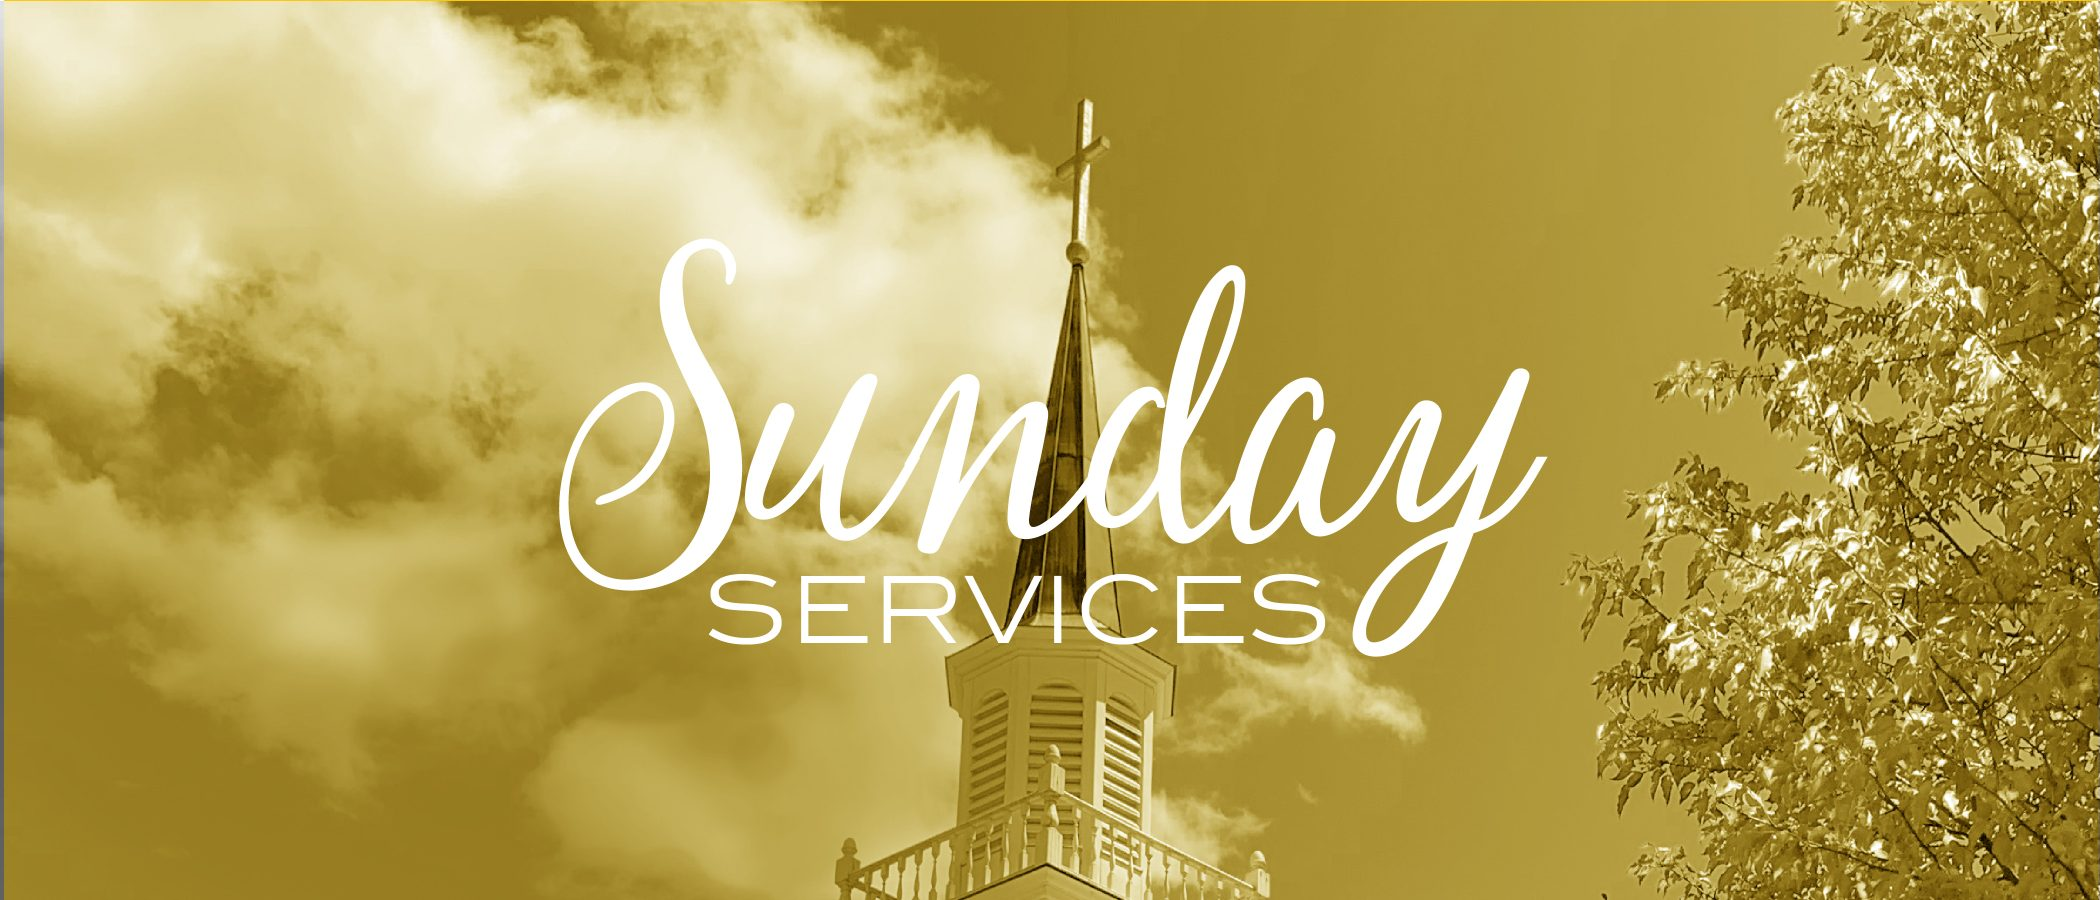 sunday-services-10brd-dq2020_pam-photo_web-banner22x-100